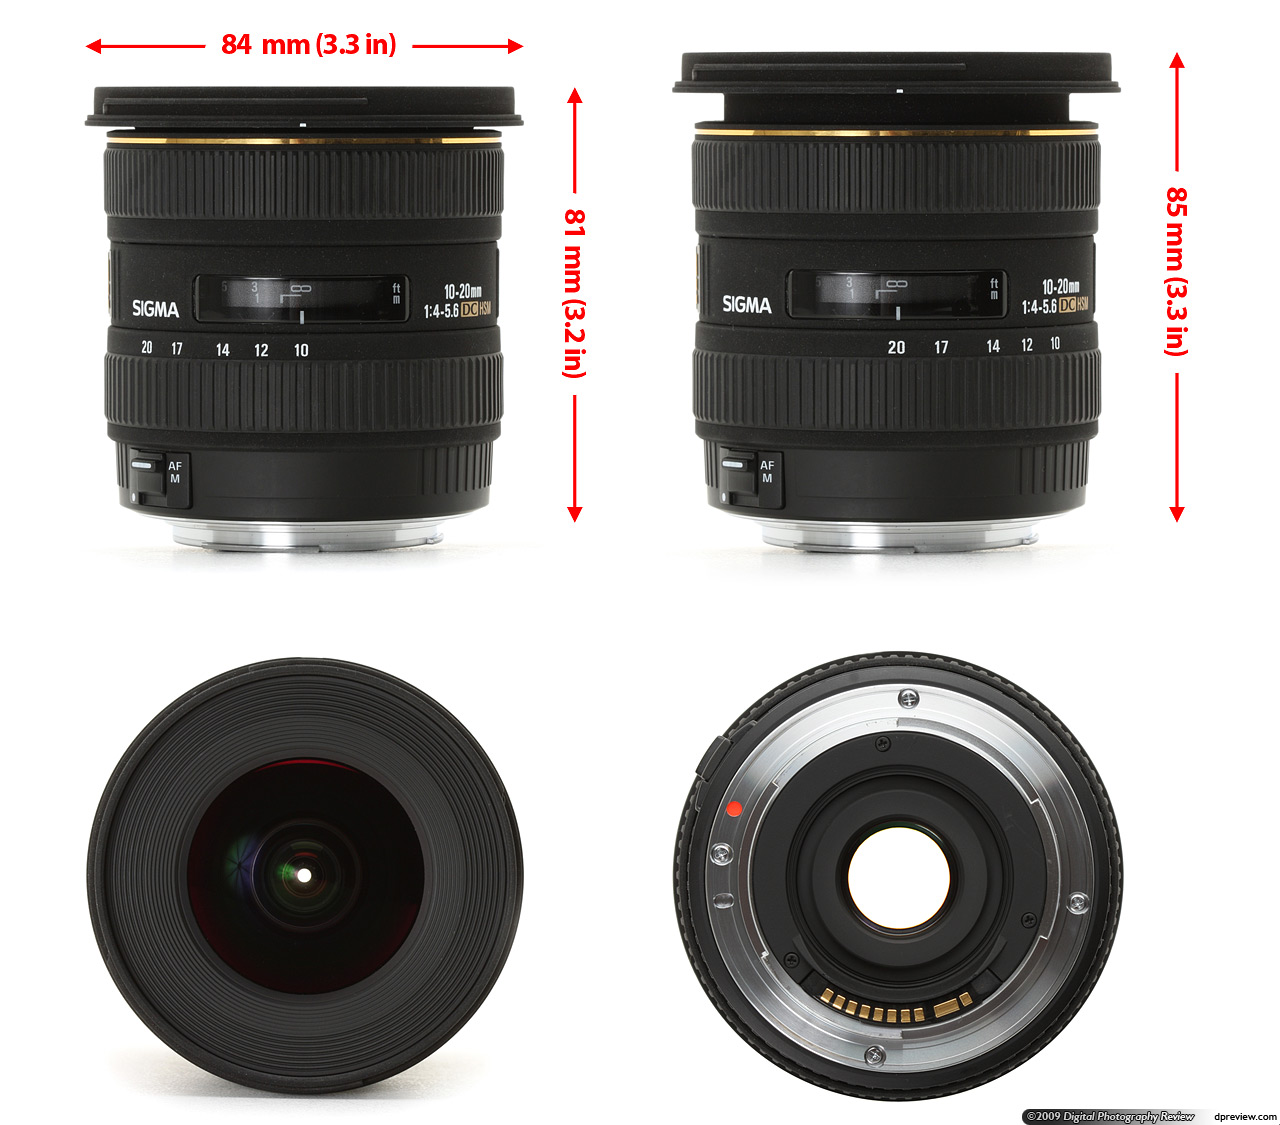 sigma 20mm 1.4 review